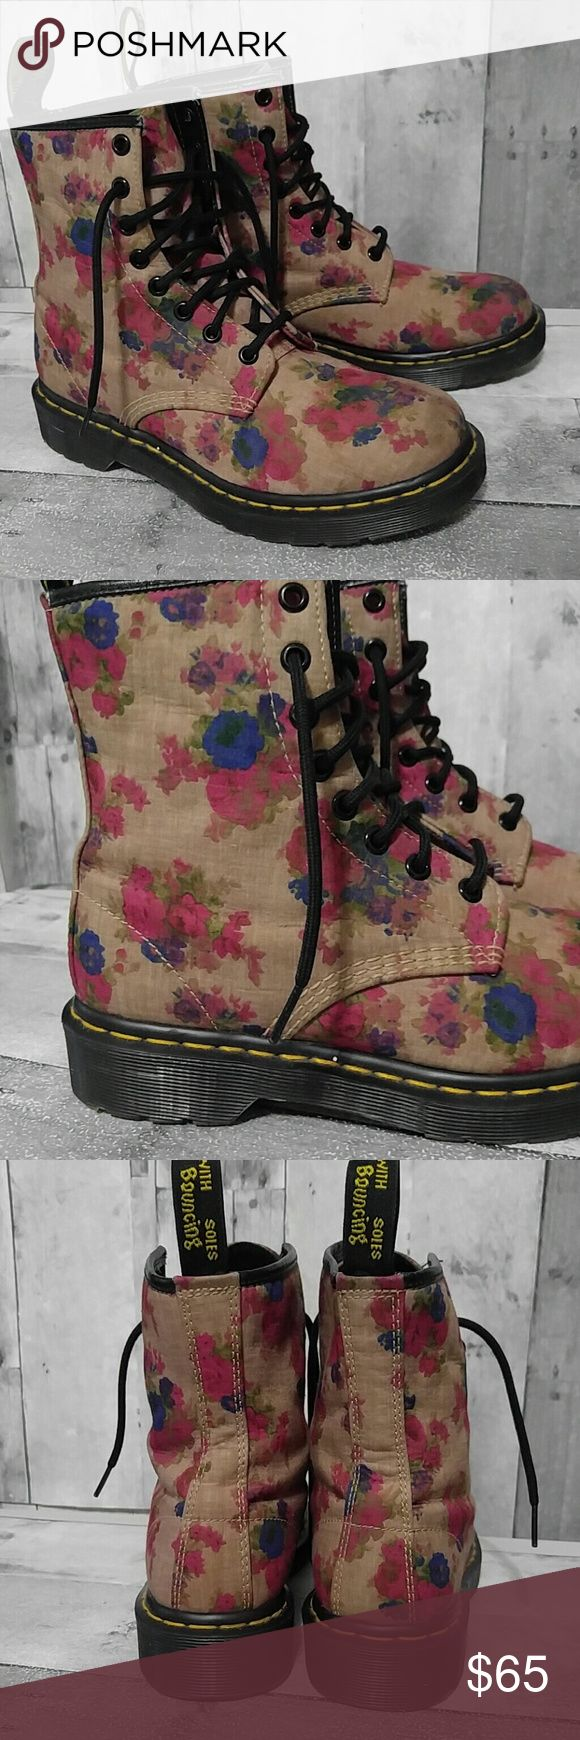 Floral Doc Dr. Martens Castel 8 eye Boots US 7 8 eyelet Doc Martens floral combat boots. Very gently pre owned with nearly perfect condition - small spot on one toe you can barely see. Bottoms perfectly clean. made in Thailand  Beautiful floral tan with red, blue and greens. Love these boots !!!! US 7, EU 38 & UK 5.  ** no trades** Dr. Martens Shoes Combat & Moto Boots